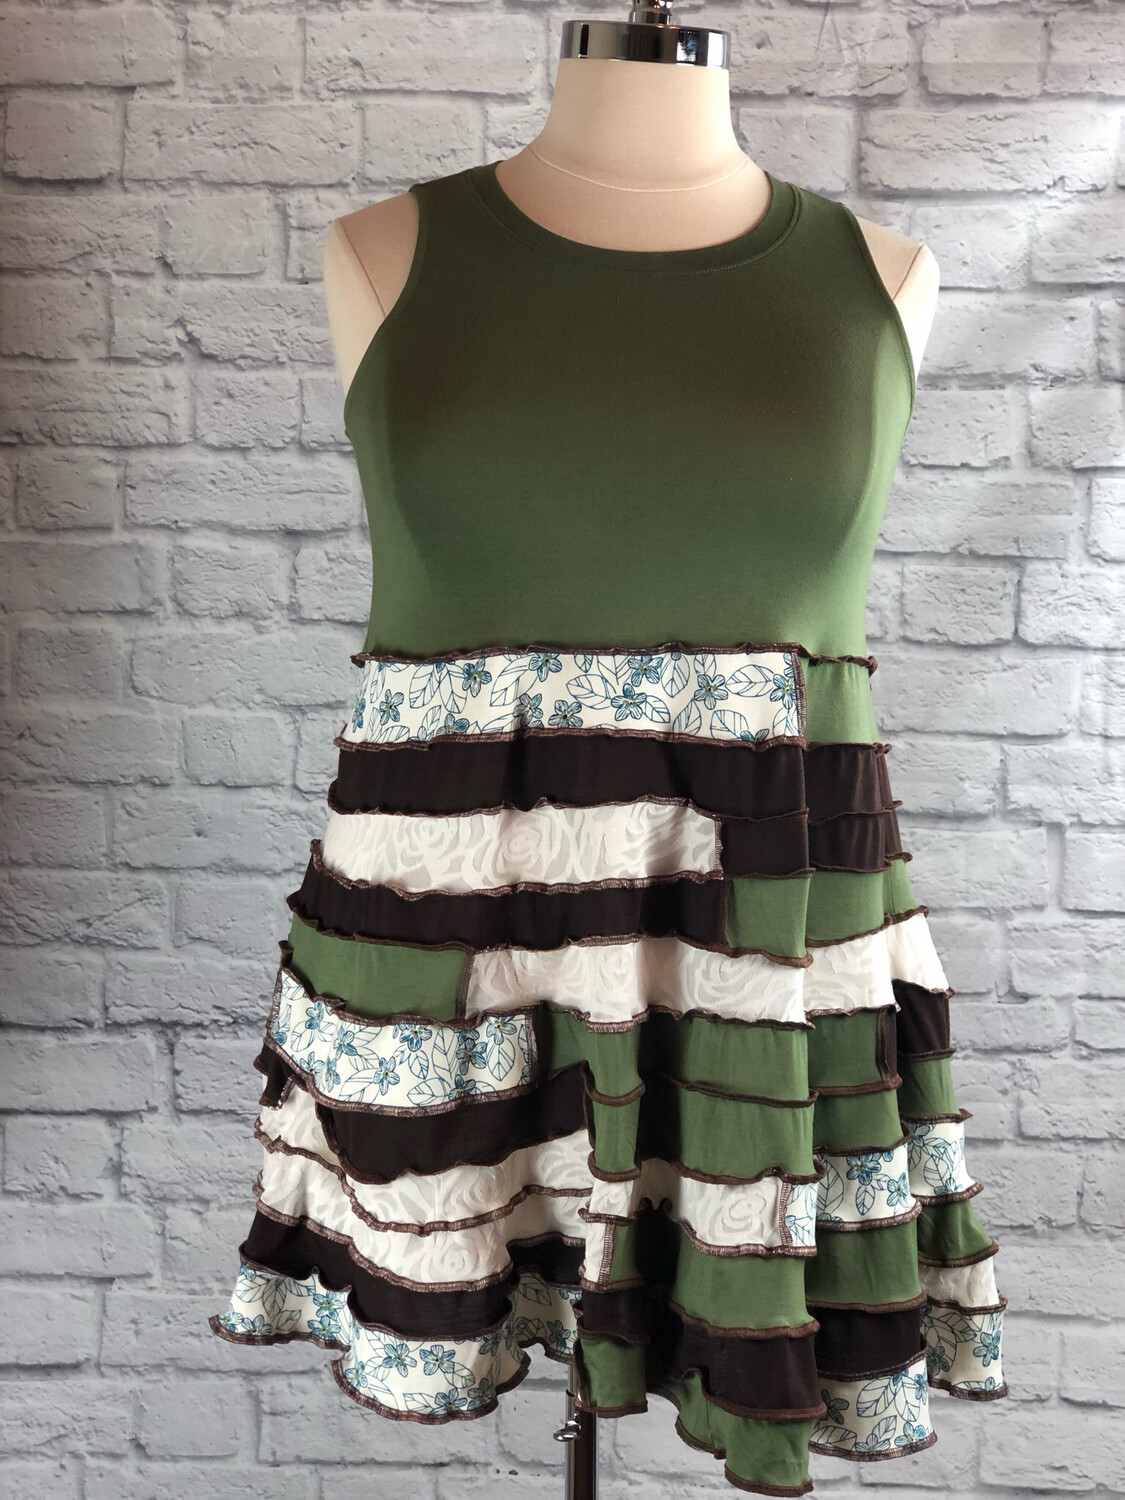 S Threads Upcycled Dress Patchwork Spiral Green Brown Fit And Flare Size L/ XL/ 2X